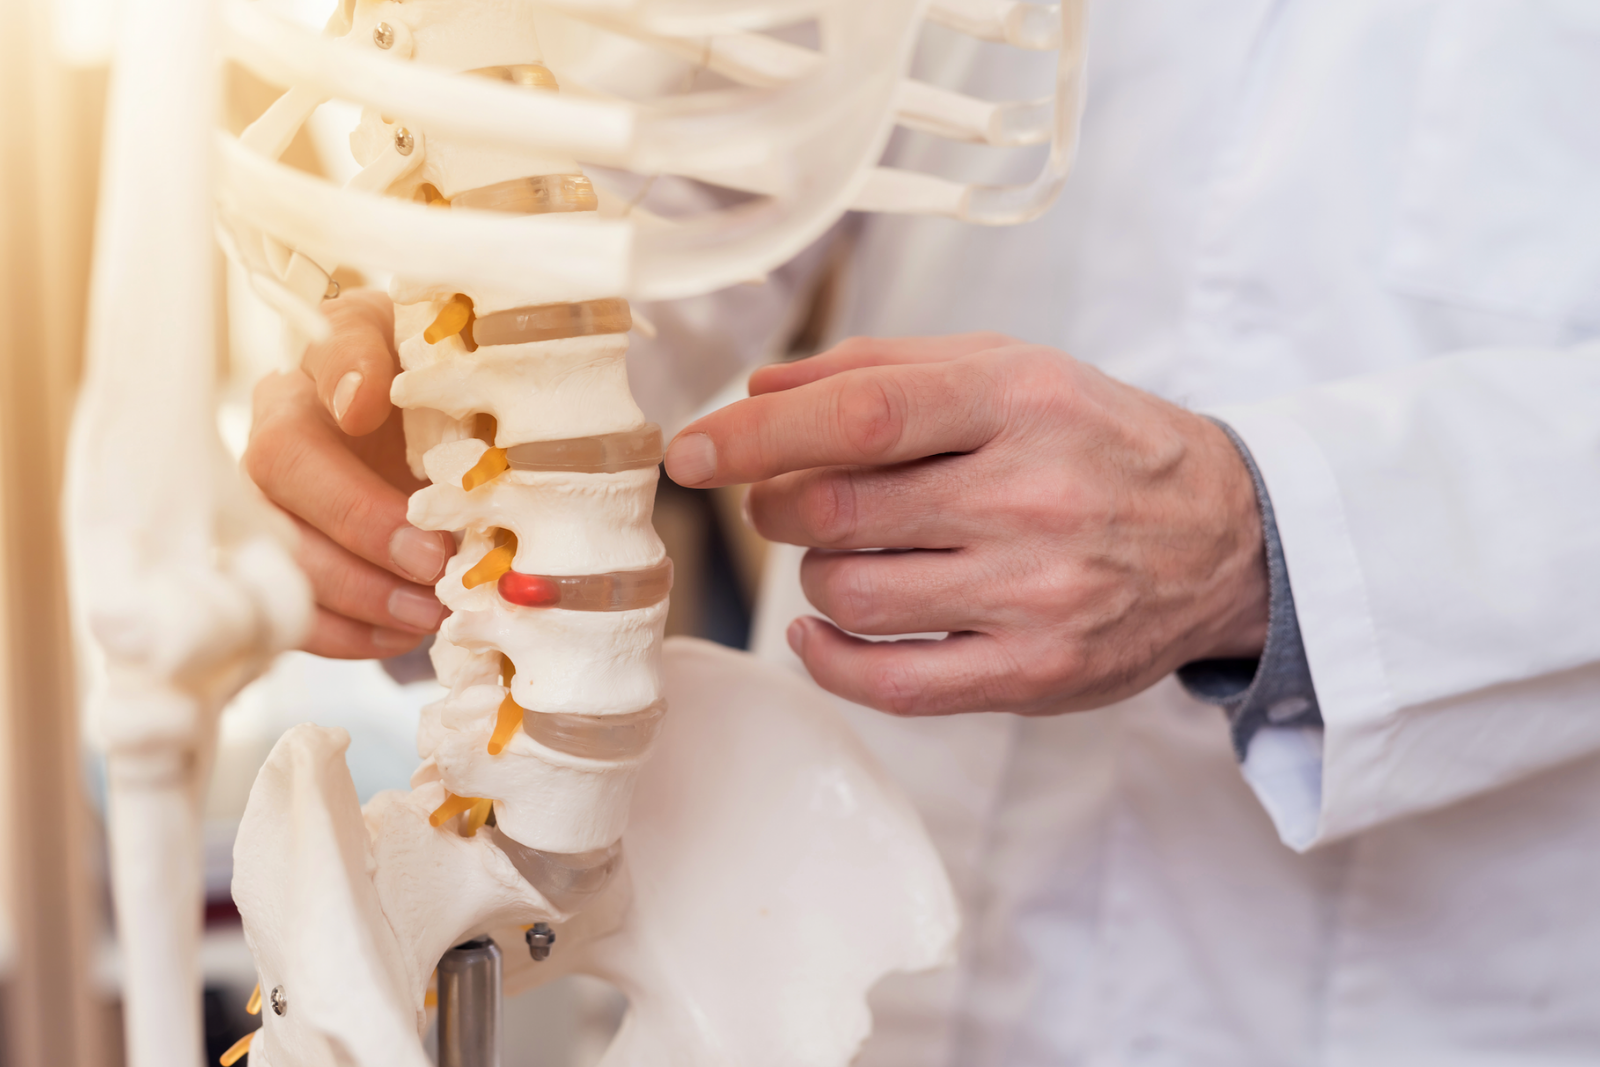 Everything you need to know about becoming a chiropractor